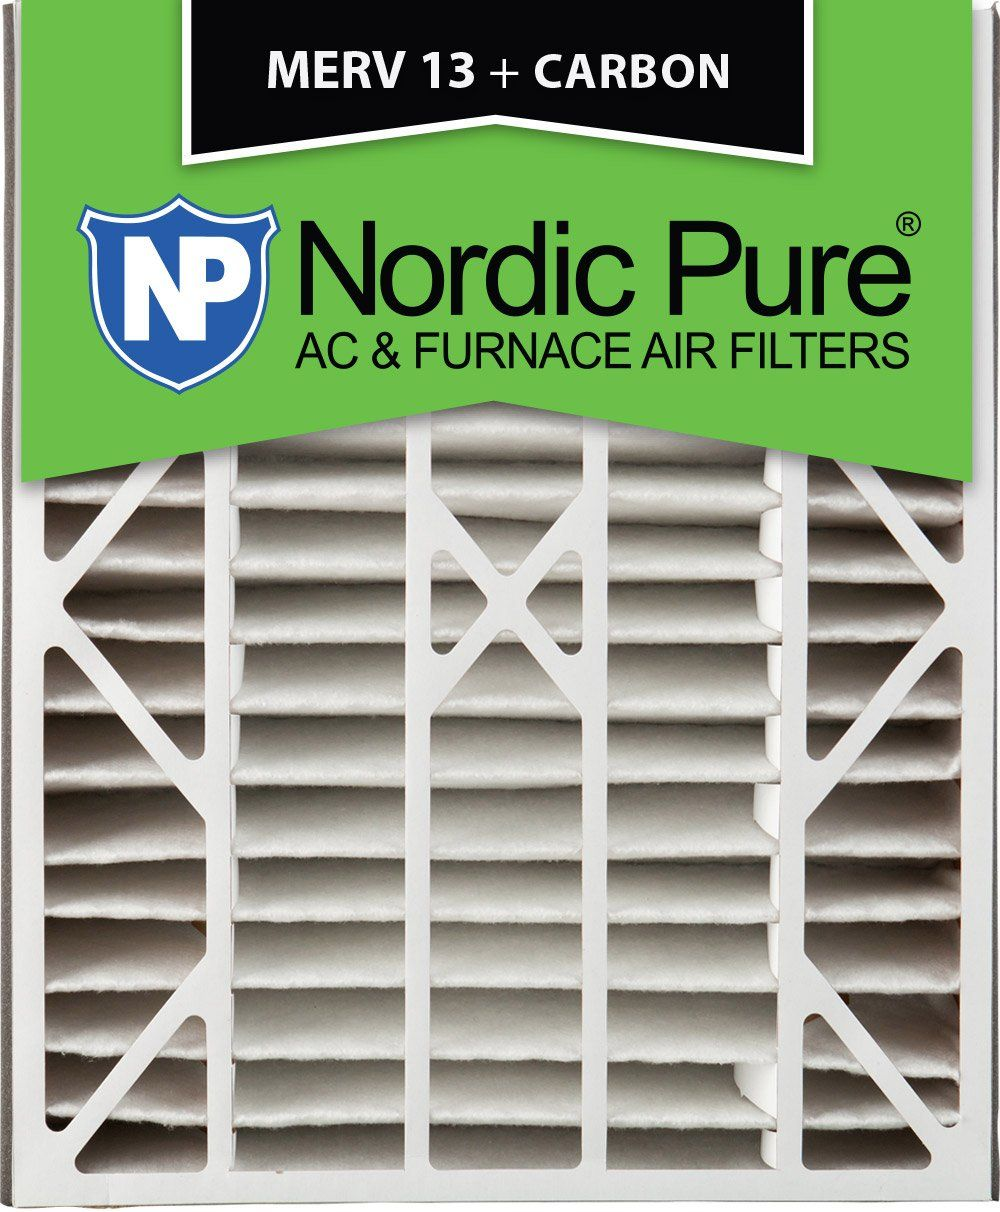 Nordic Pure 20x25x5 4 7 8 Actual Depth Merv 13 Plus Carbon Trion